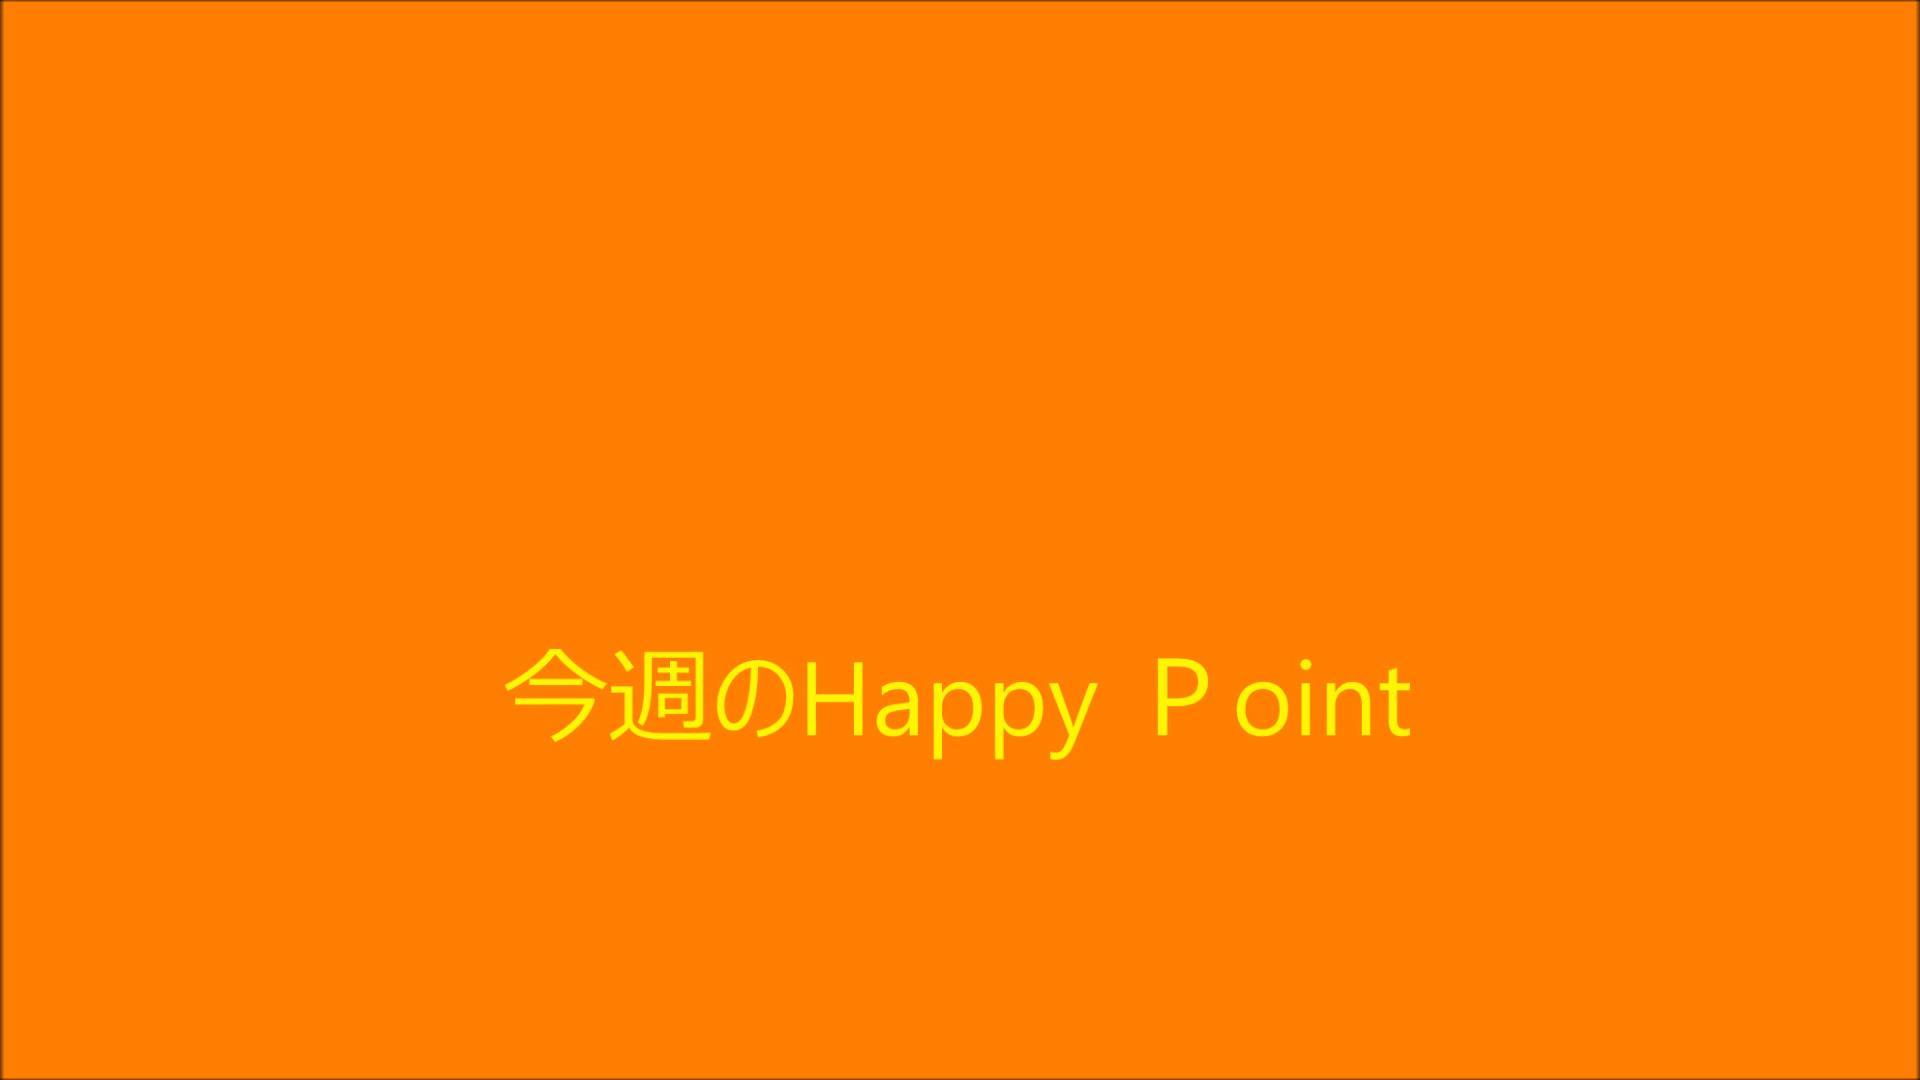 8月30日のHappy Point_a0168274_14595109.jpg